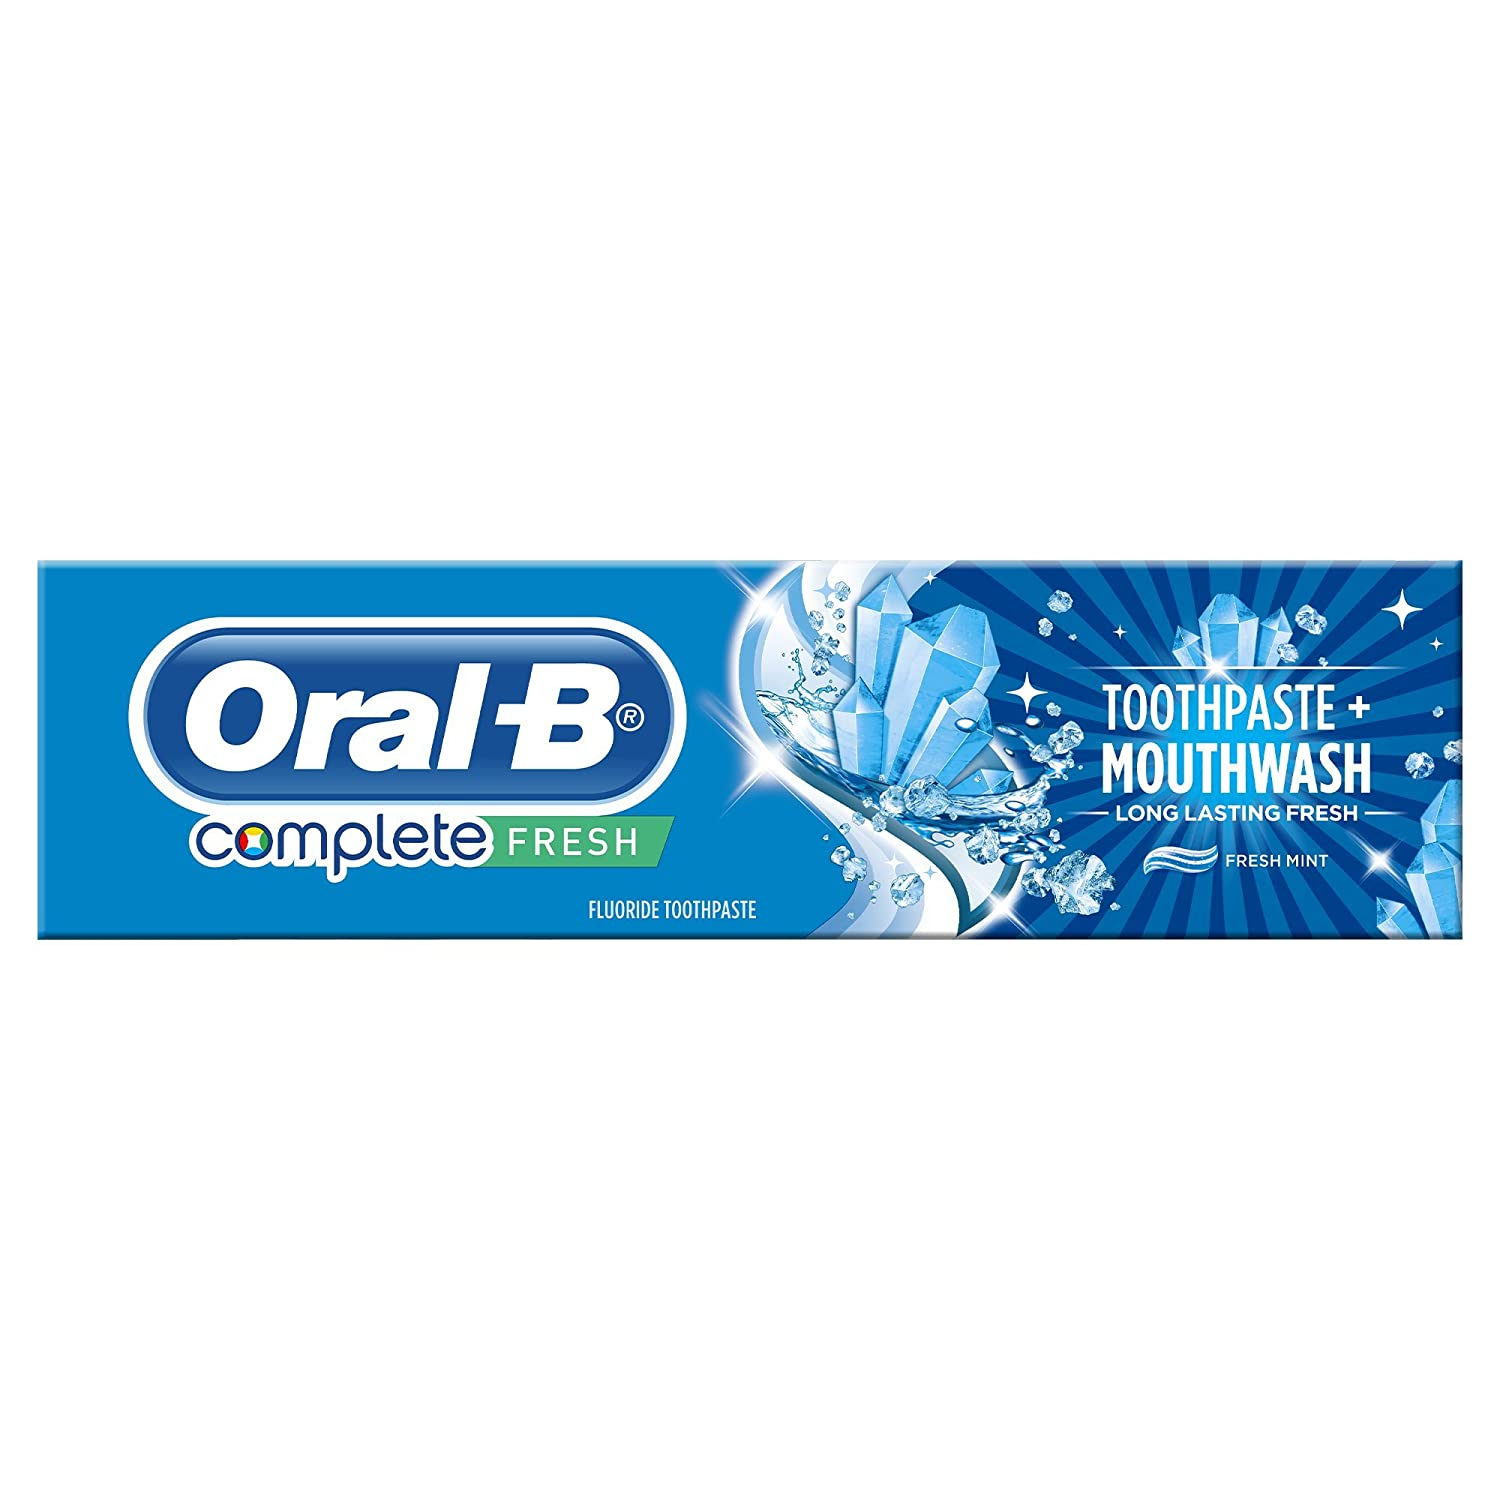 Oral-B Complete Fresh MouthWash Toothpaste, 100 ml